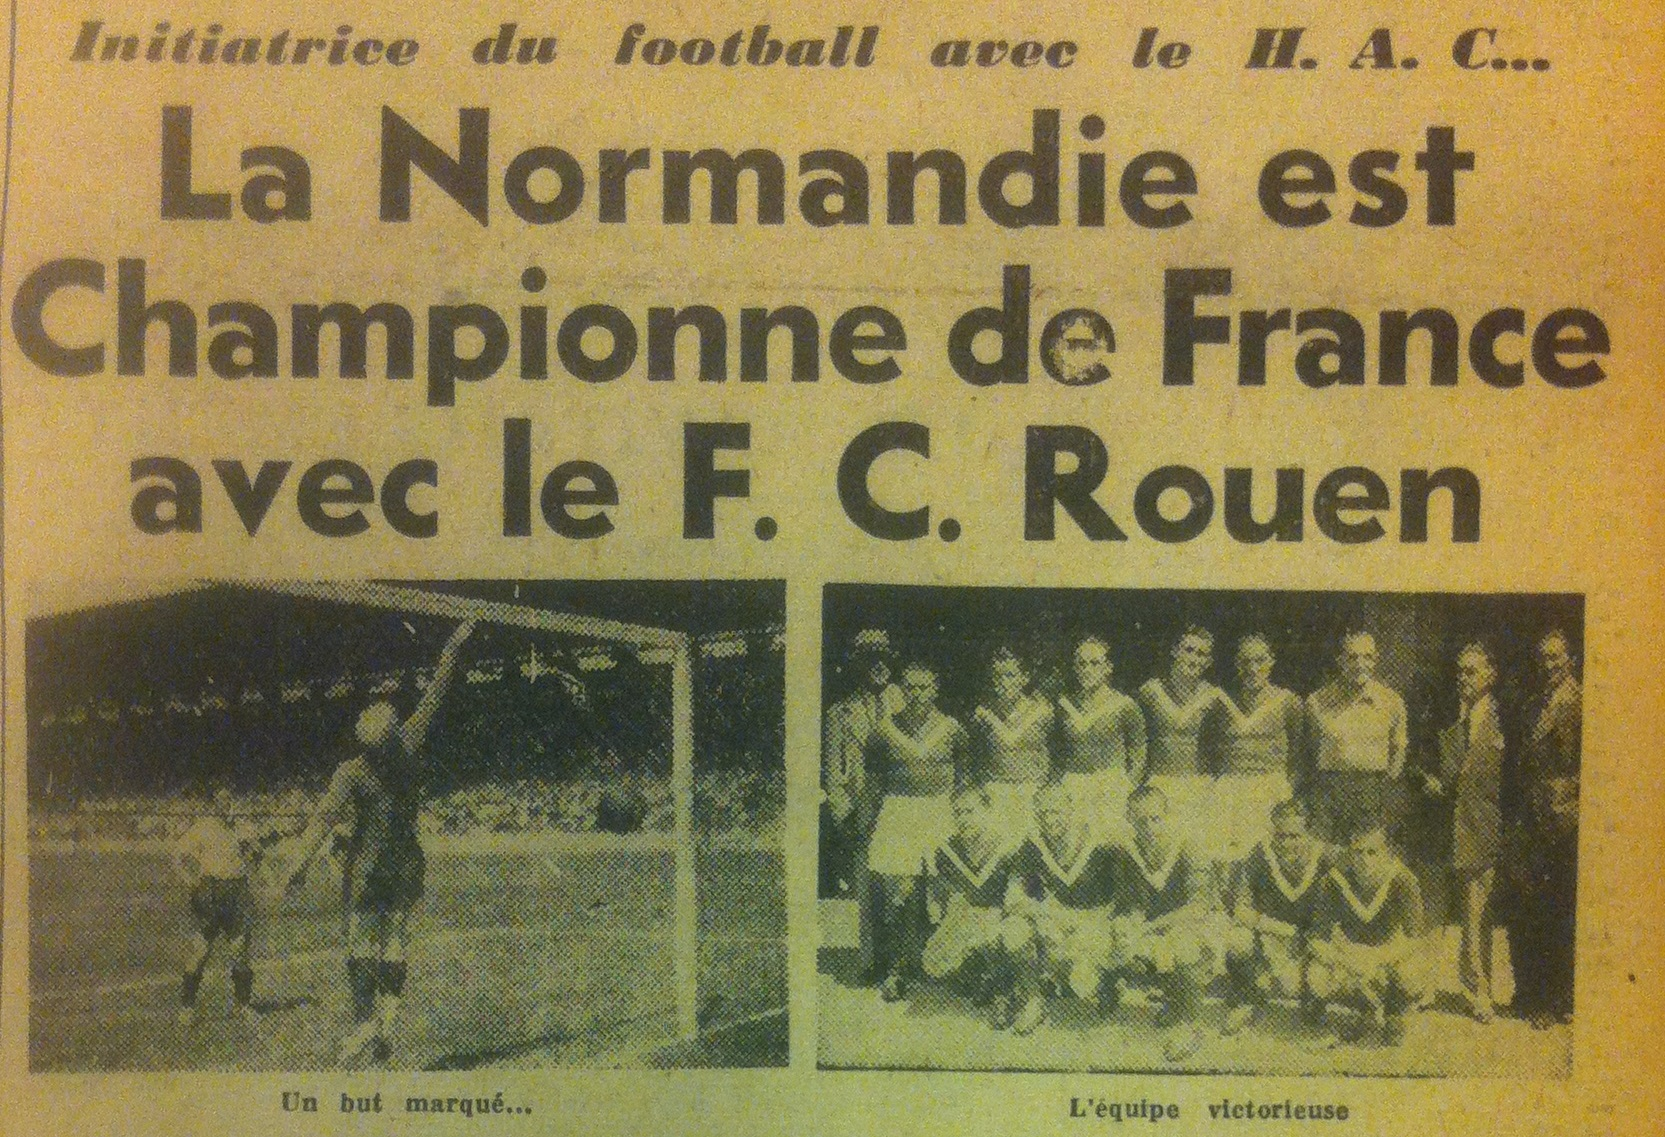 FC Rouen champion de france